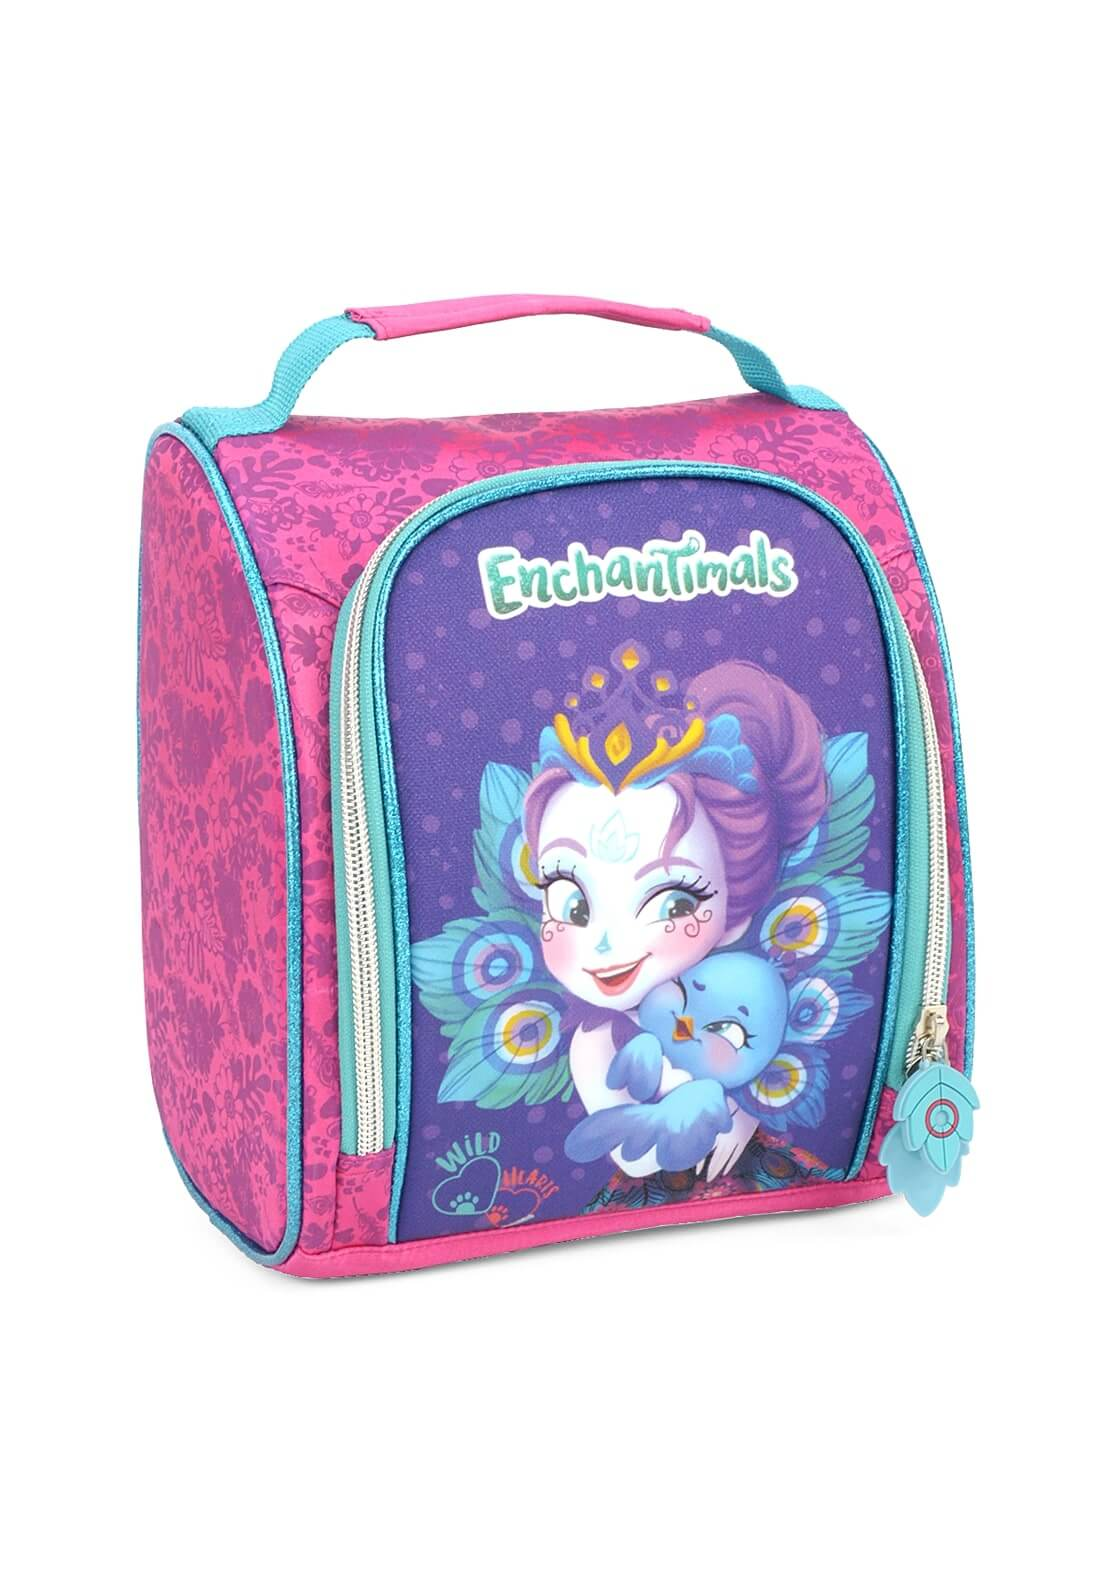 Kit Escolar Mochila de Rodinha + Lancheira Enchantimals Pink